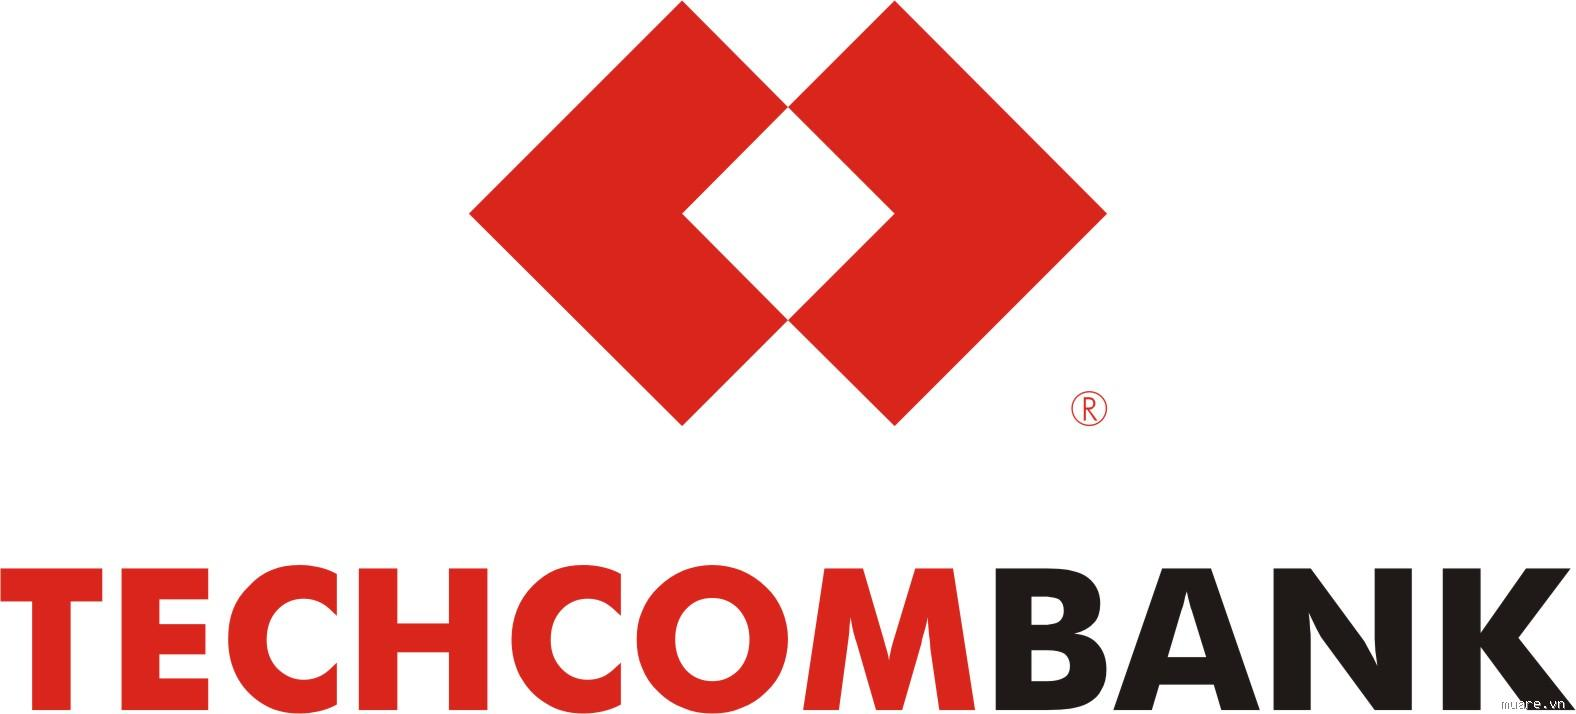 Description: http://www.abay.vn/Images/payment/bank-logo-TCB.gif